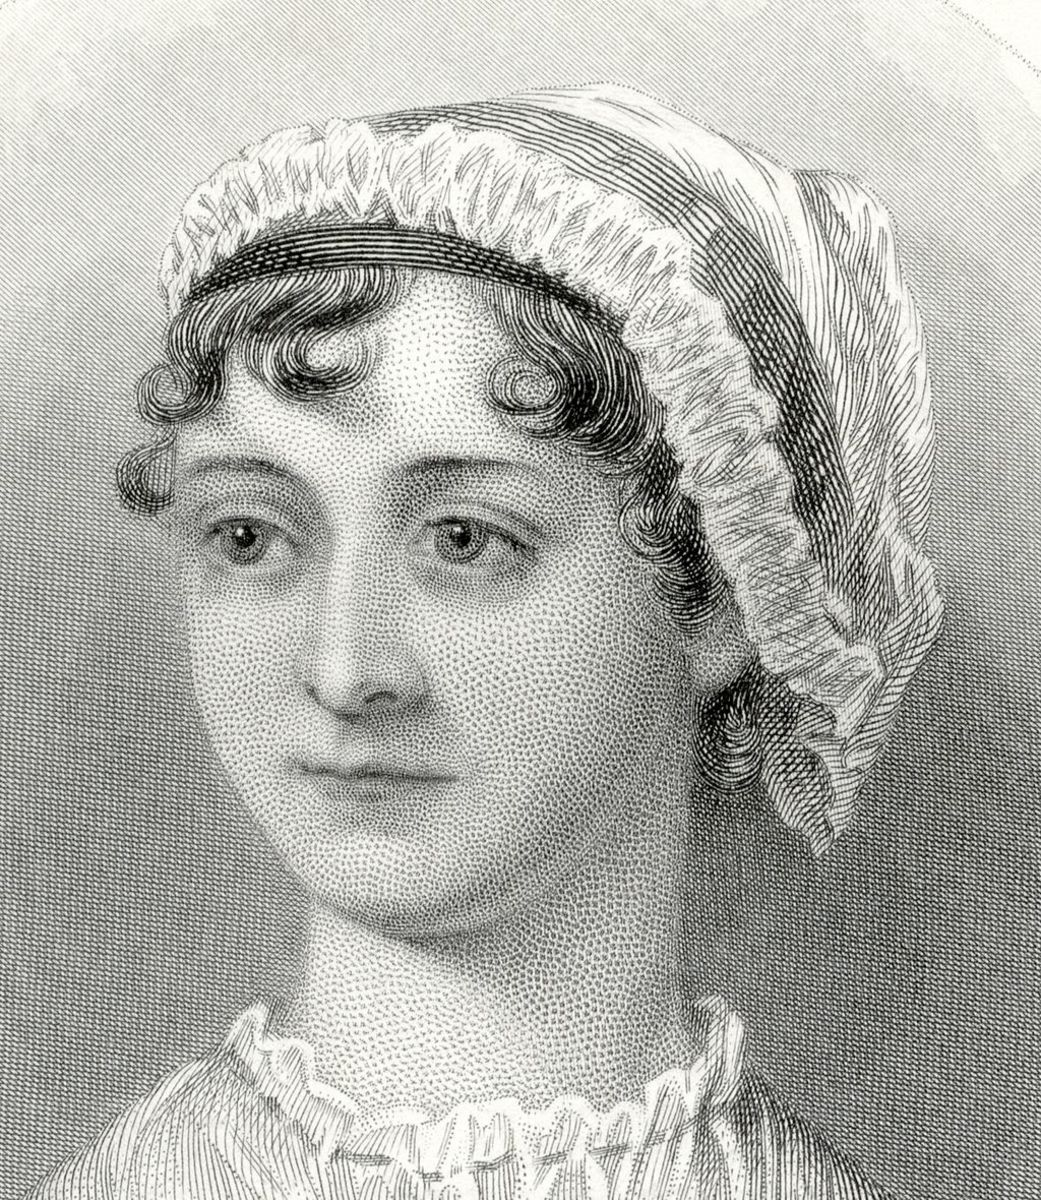 Jane Austen, (born December 16, 1775, Steventon, Hampshire, England—died July 18, 1817, Winchester, Hampshire), English writer who first gave the novel its distinctly modern character through her treatment of ordinary people in everyday life.